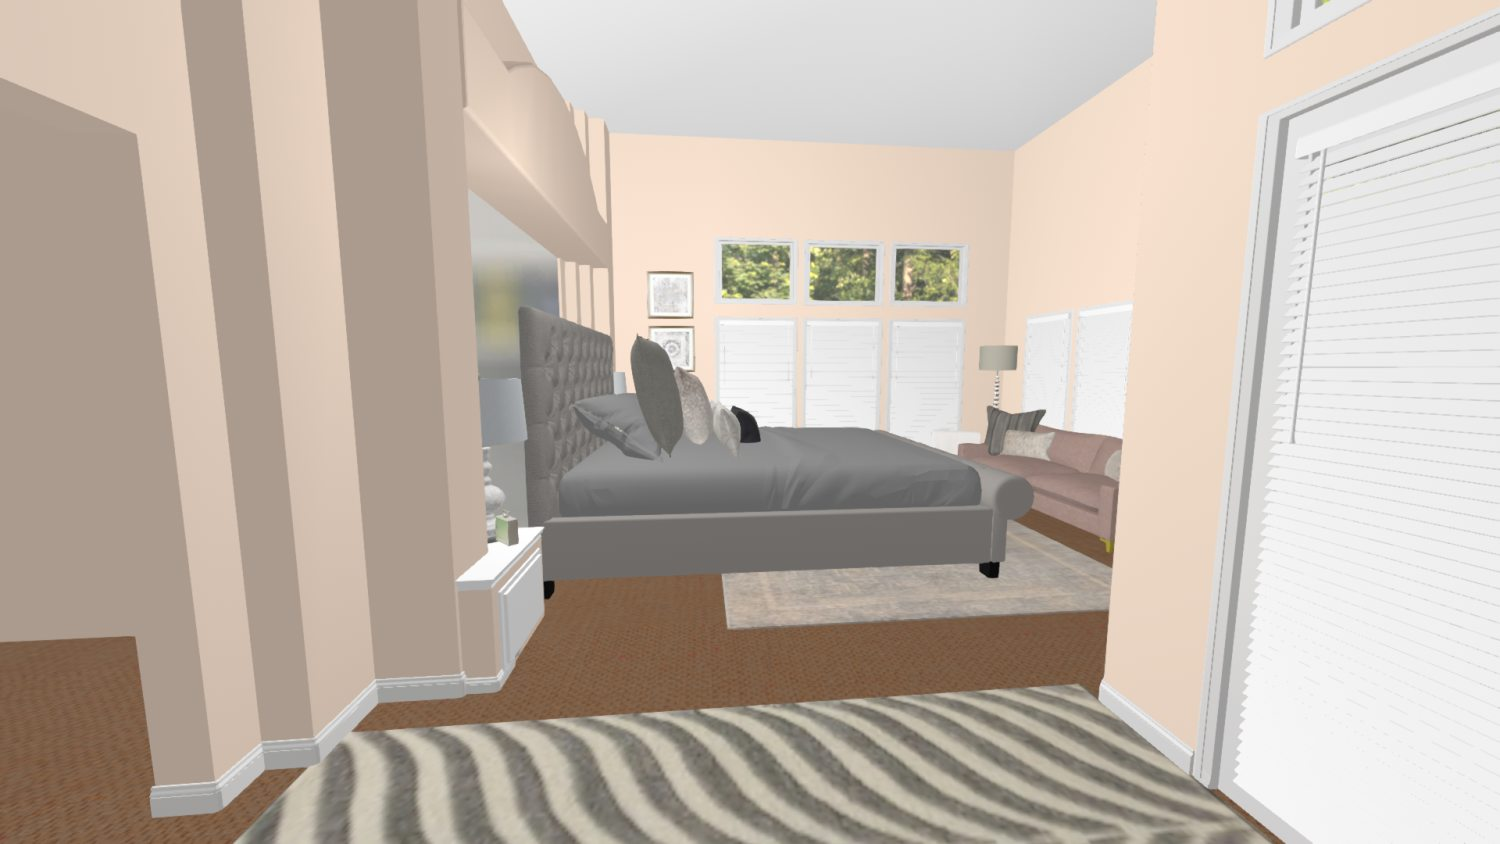 3D Design For Maxie and Mark McClintock New Bedroom View